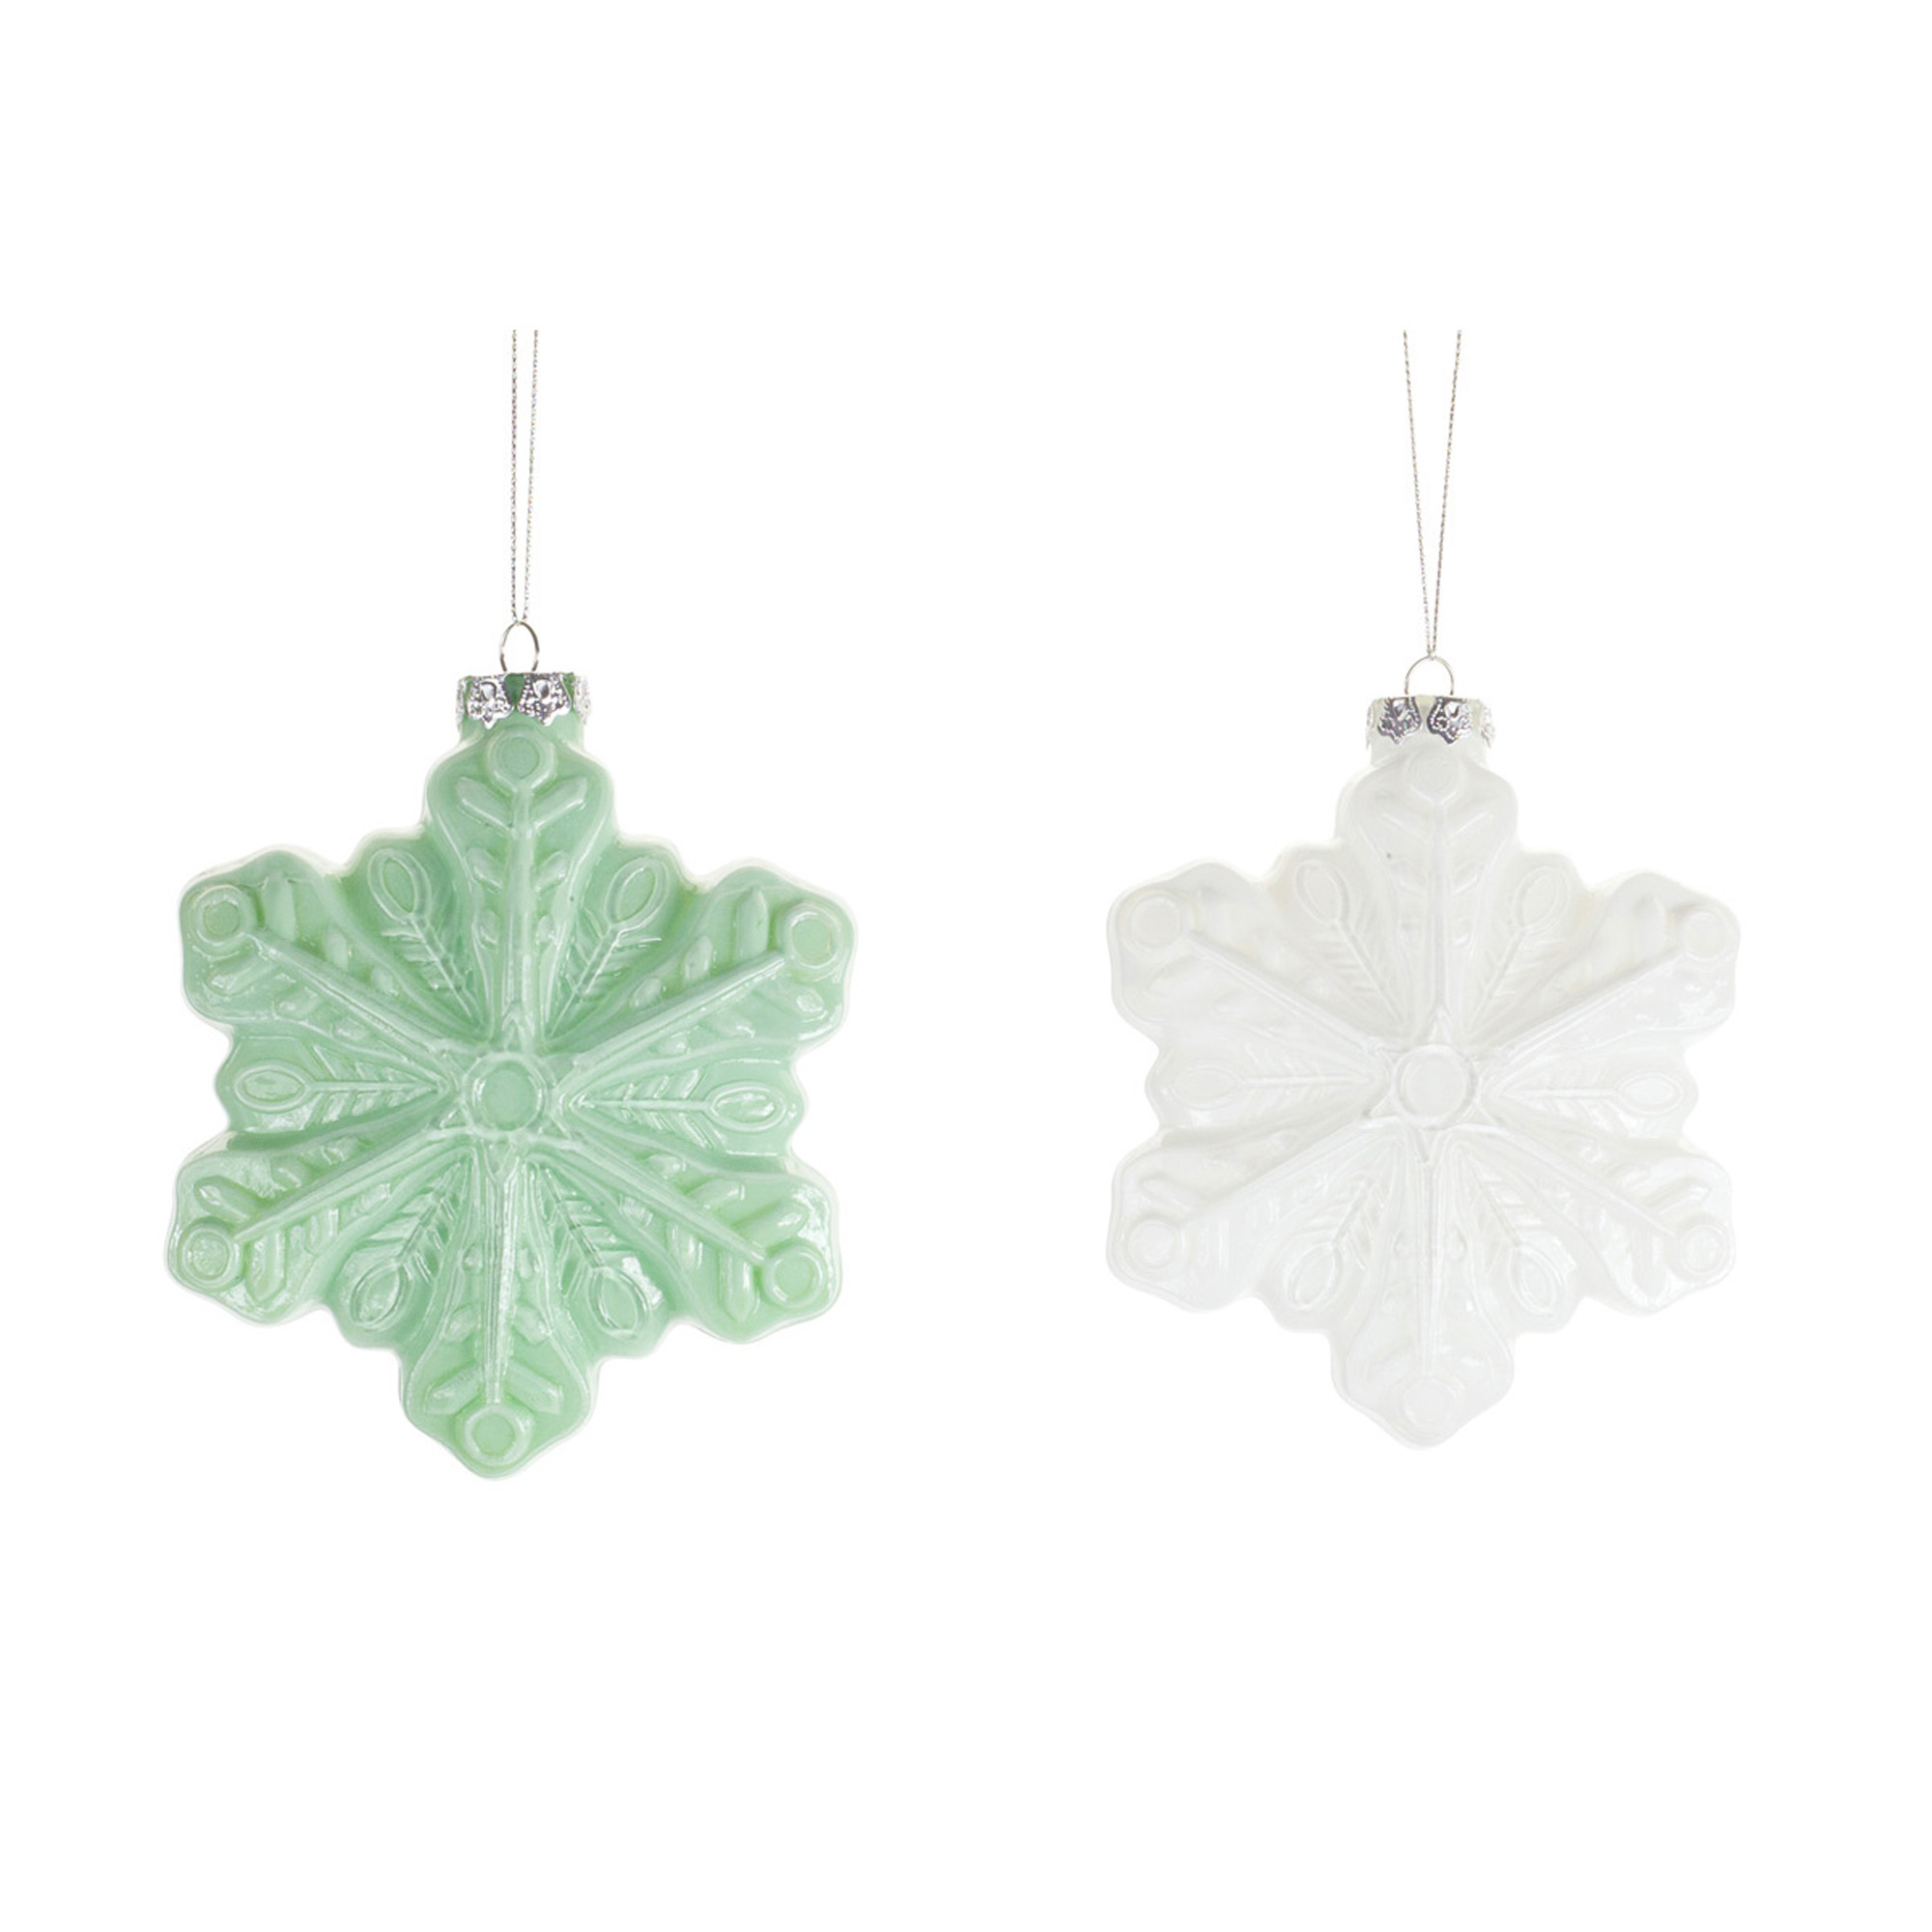 Buy the 6ct Milk Glass Snowflake Ornaments at Michaels6ct Milk Glass Snowflake Ornaments - 웹